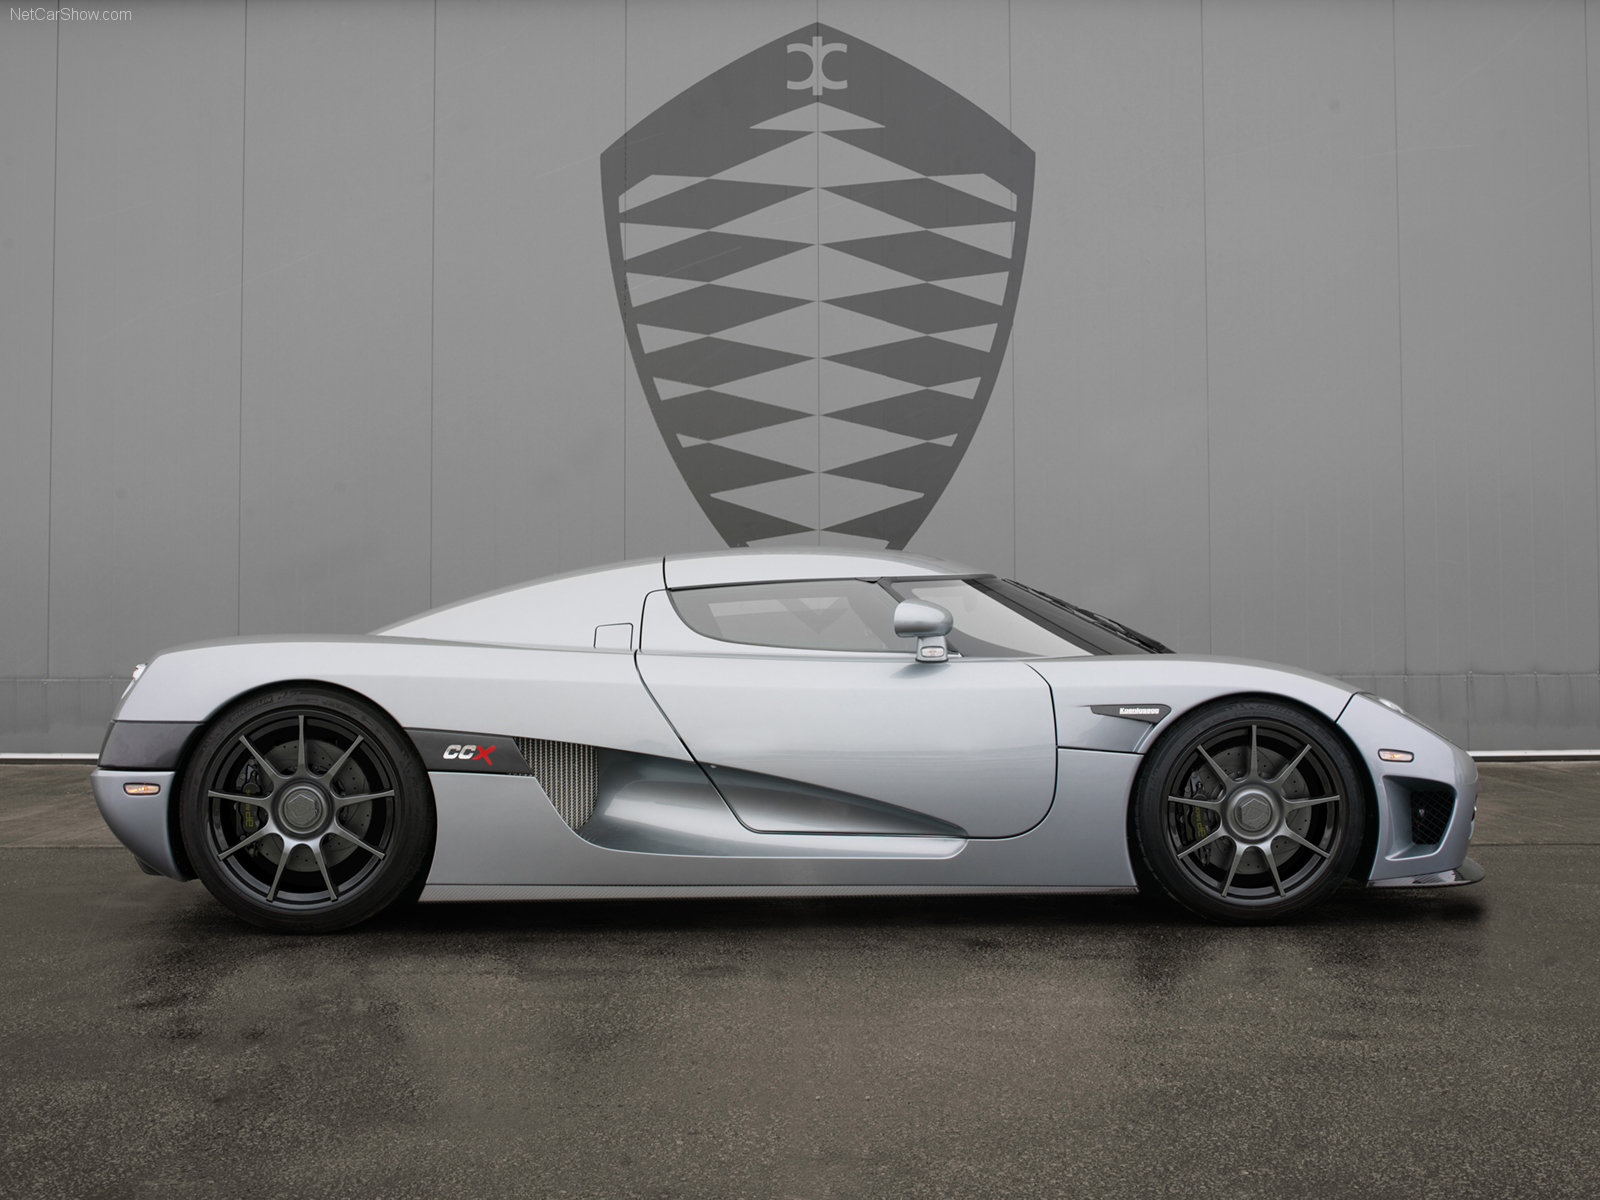 Luxury Sports Car Series Wallpapers Hot Cars Zone | Luxury Cars ...